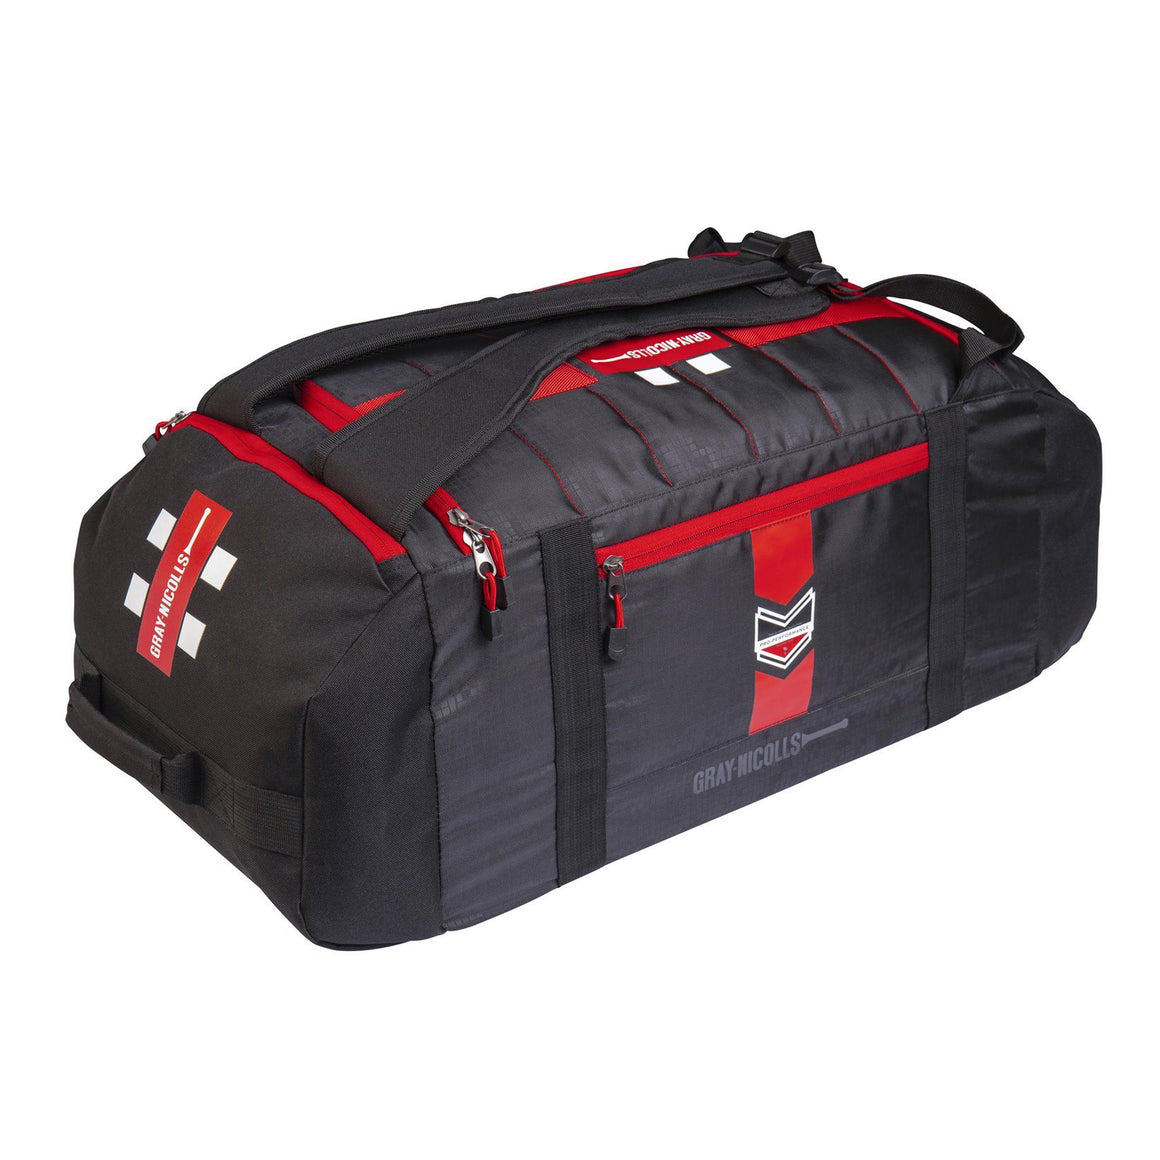 Pro Performance Cricket Bag in Black & Red